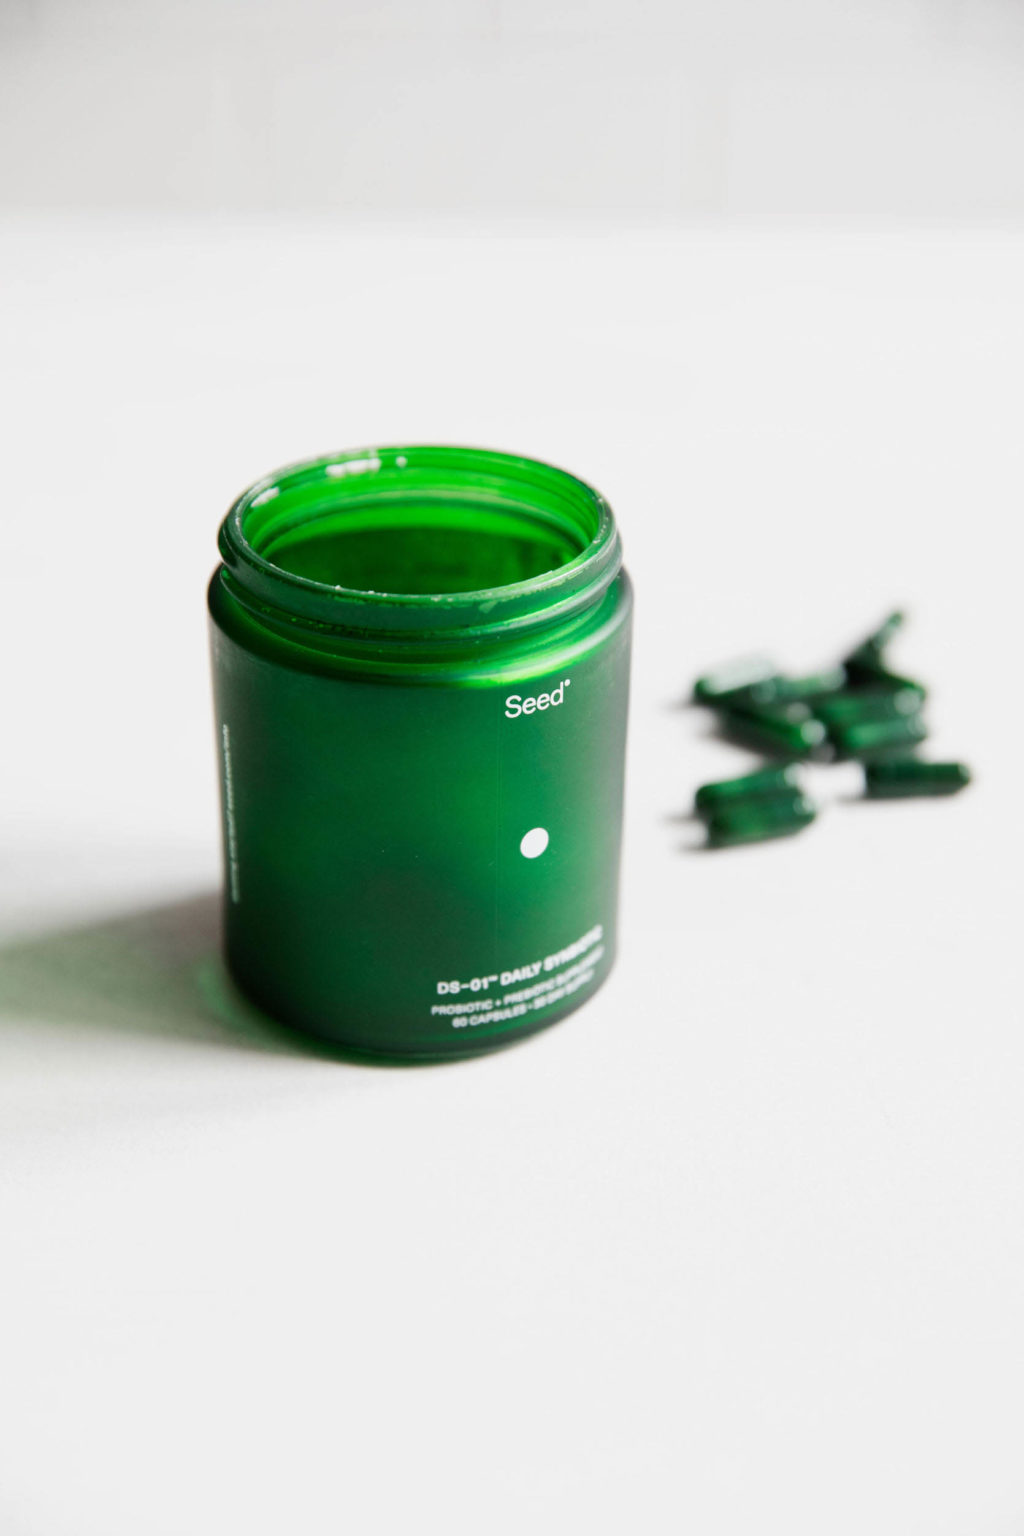 A green, glass pill bottle is standing atop a white surface.